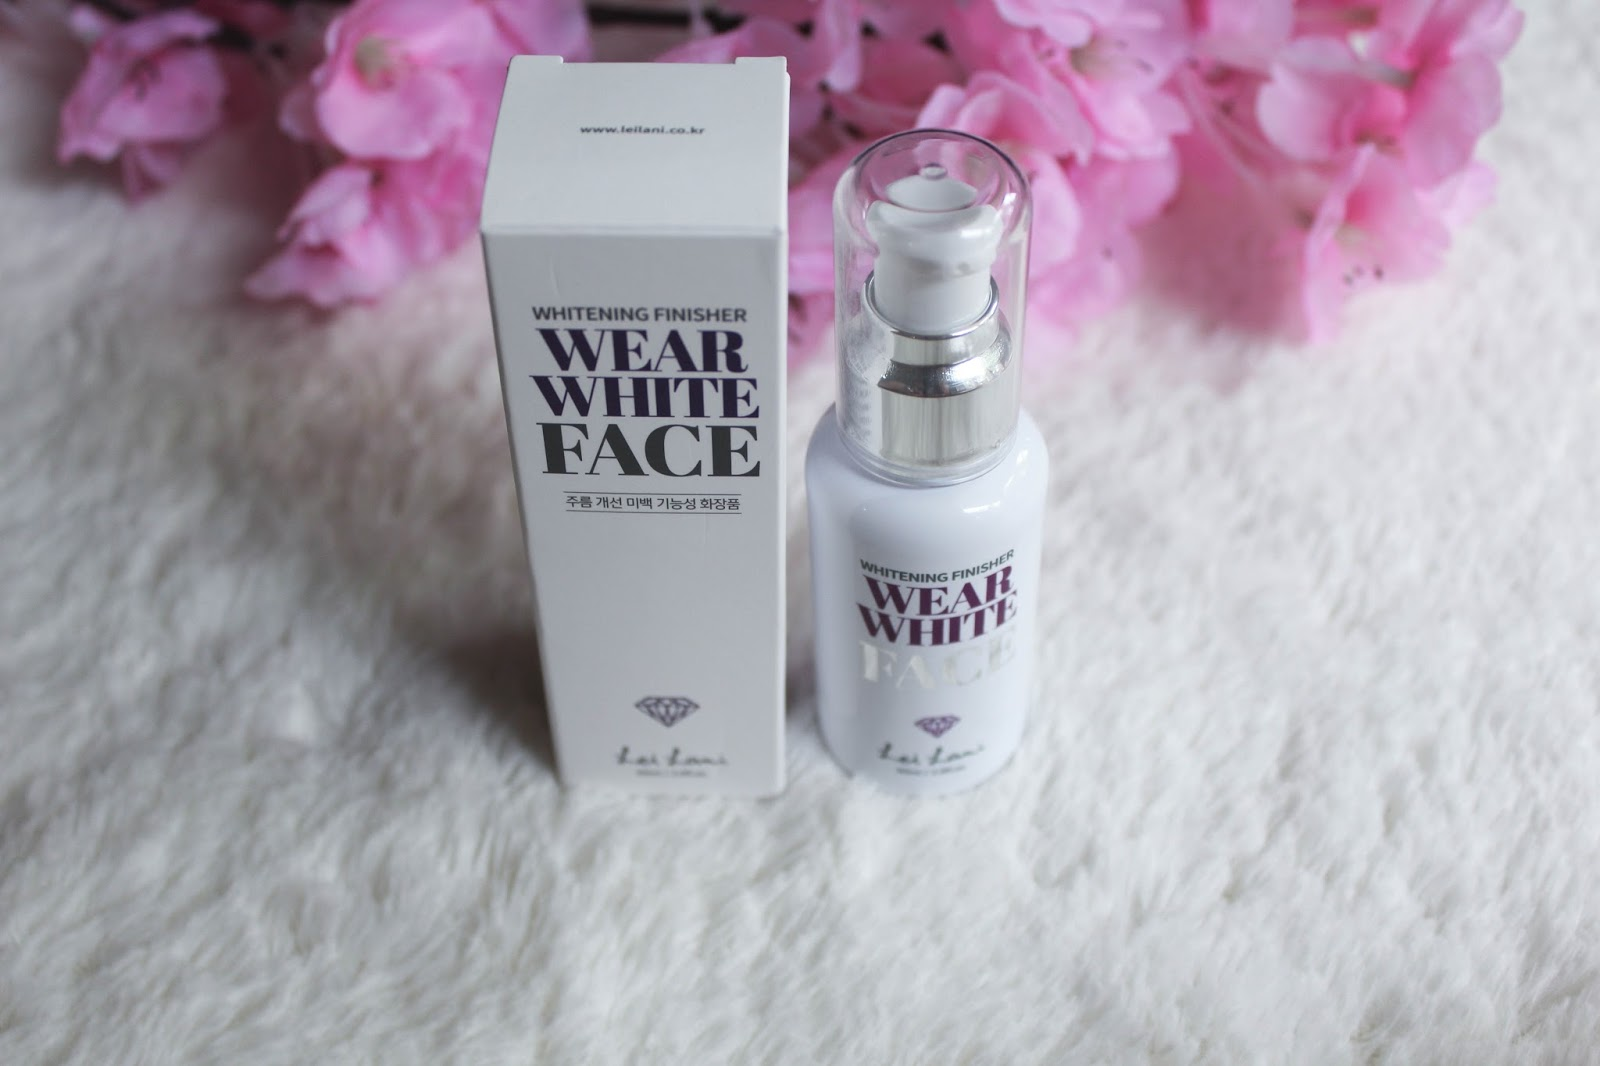 Wear White Face Whitening Finisher Review